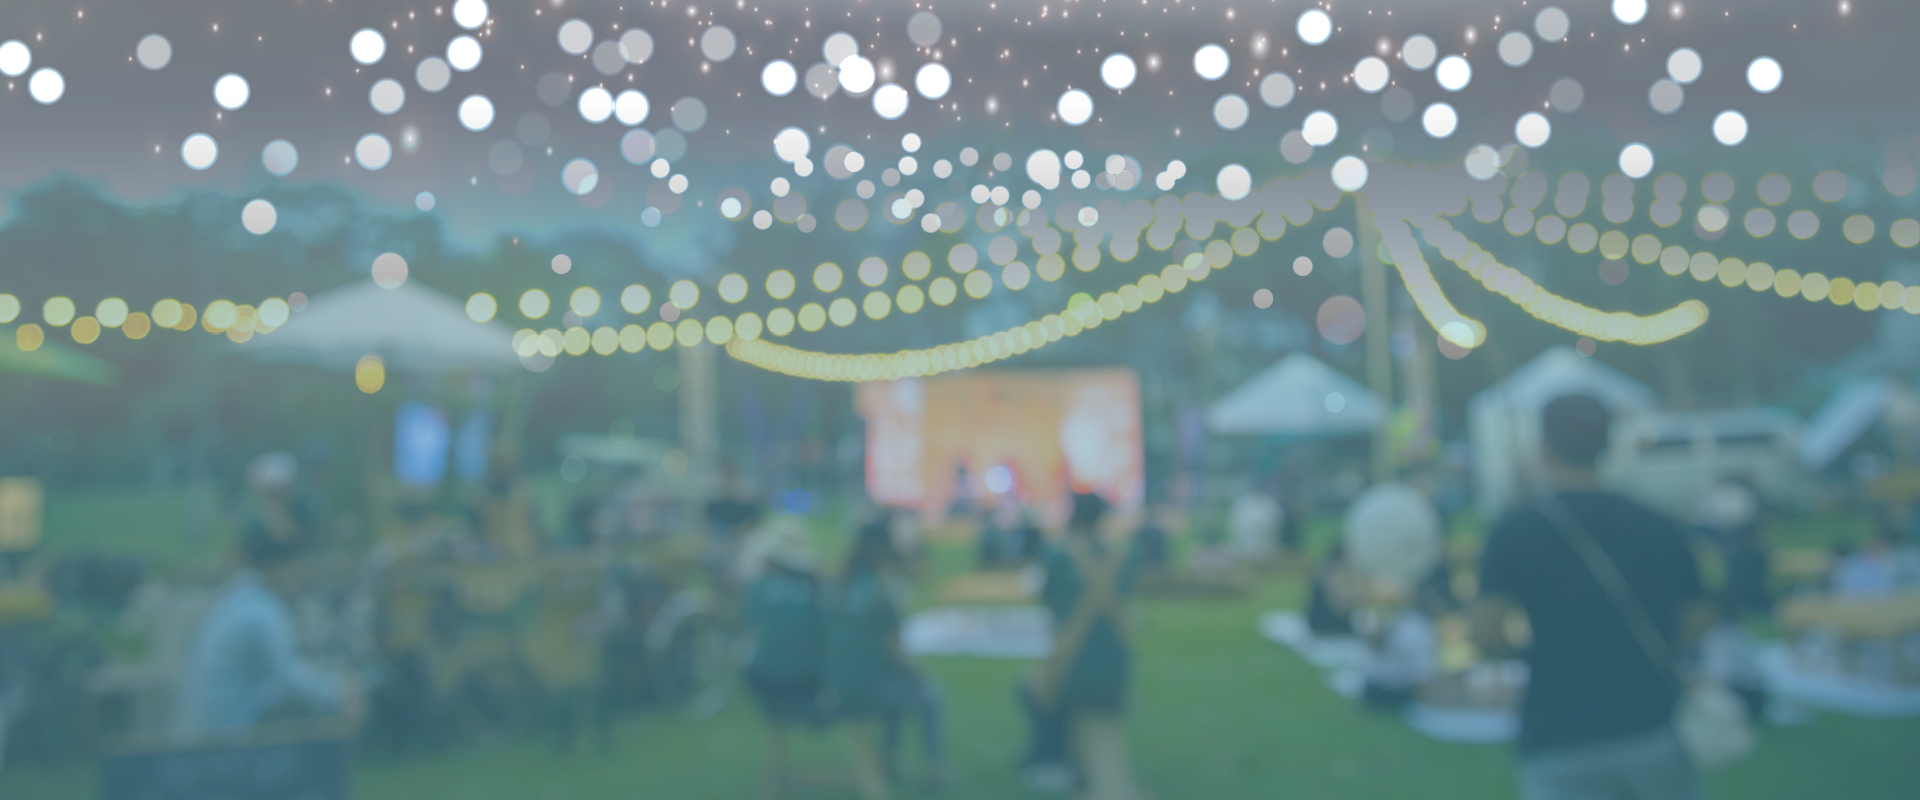 Outdoor event with fairy lights and picnic tables